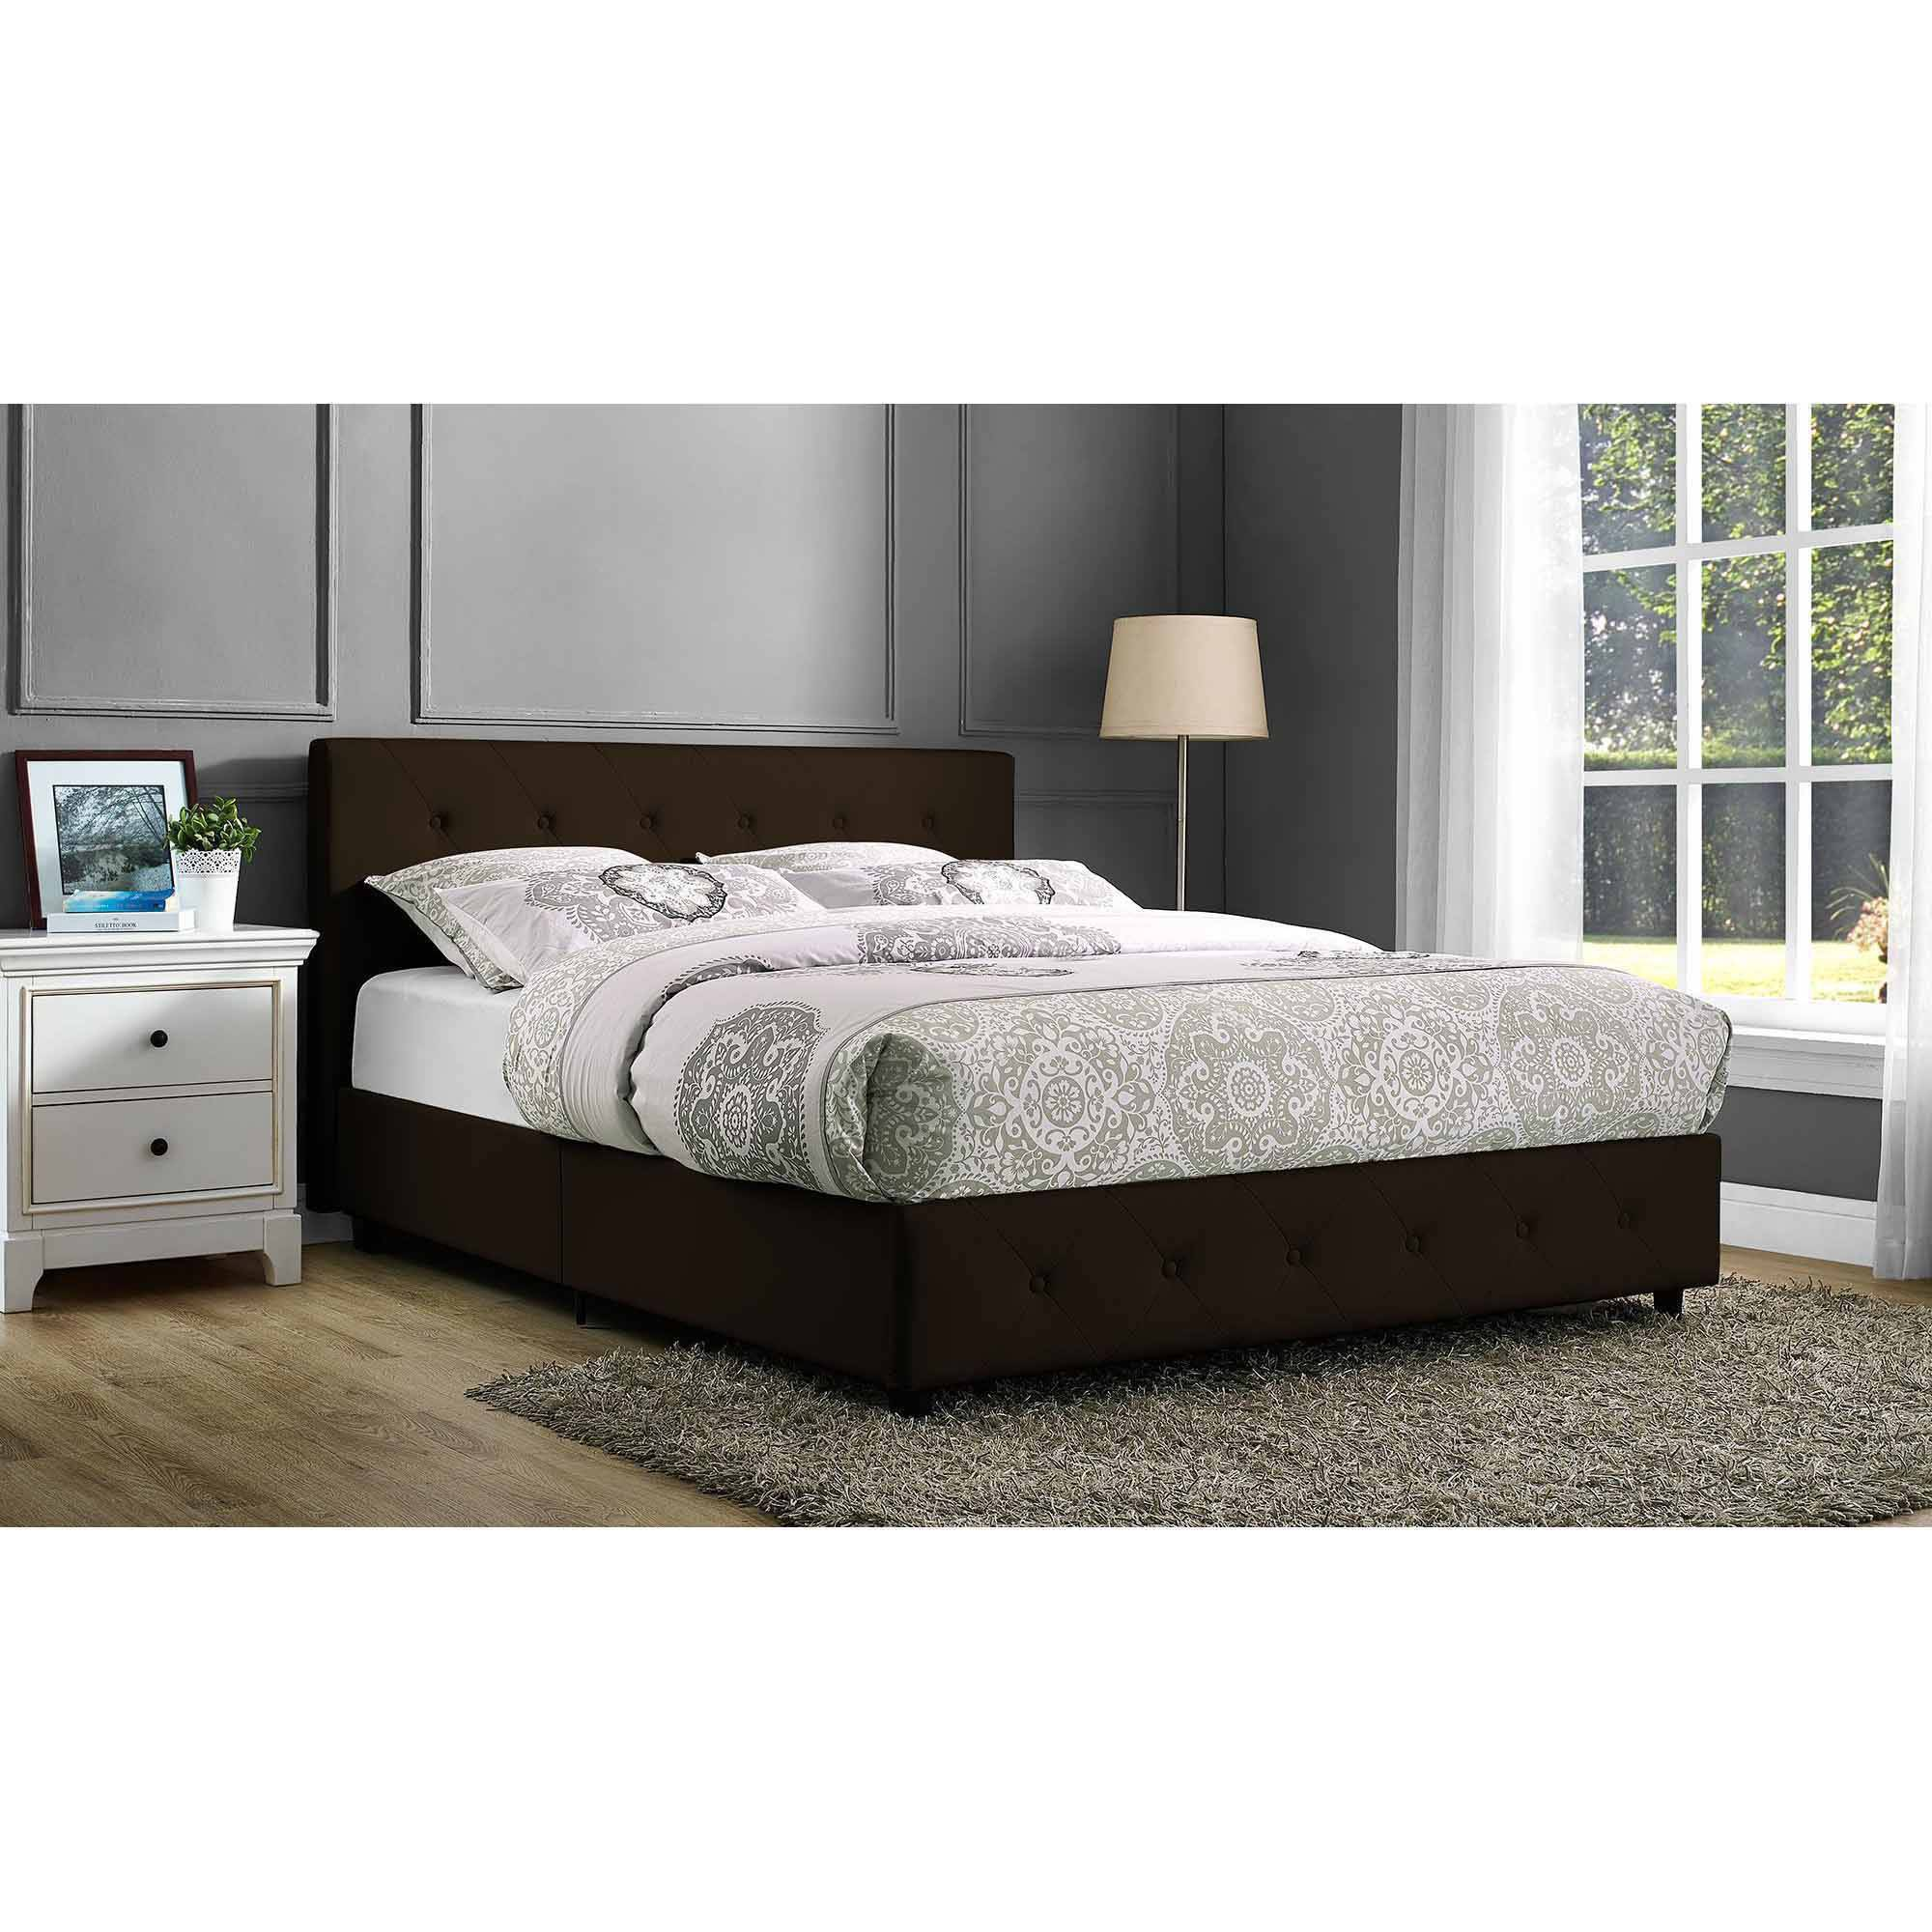 DHP Dakota Faux Leather Upholstered Bed, Multiple Colors and Sizes by Dorel Home Products